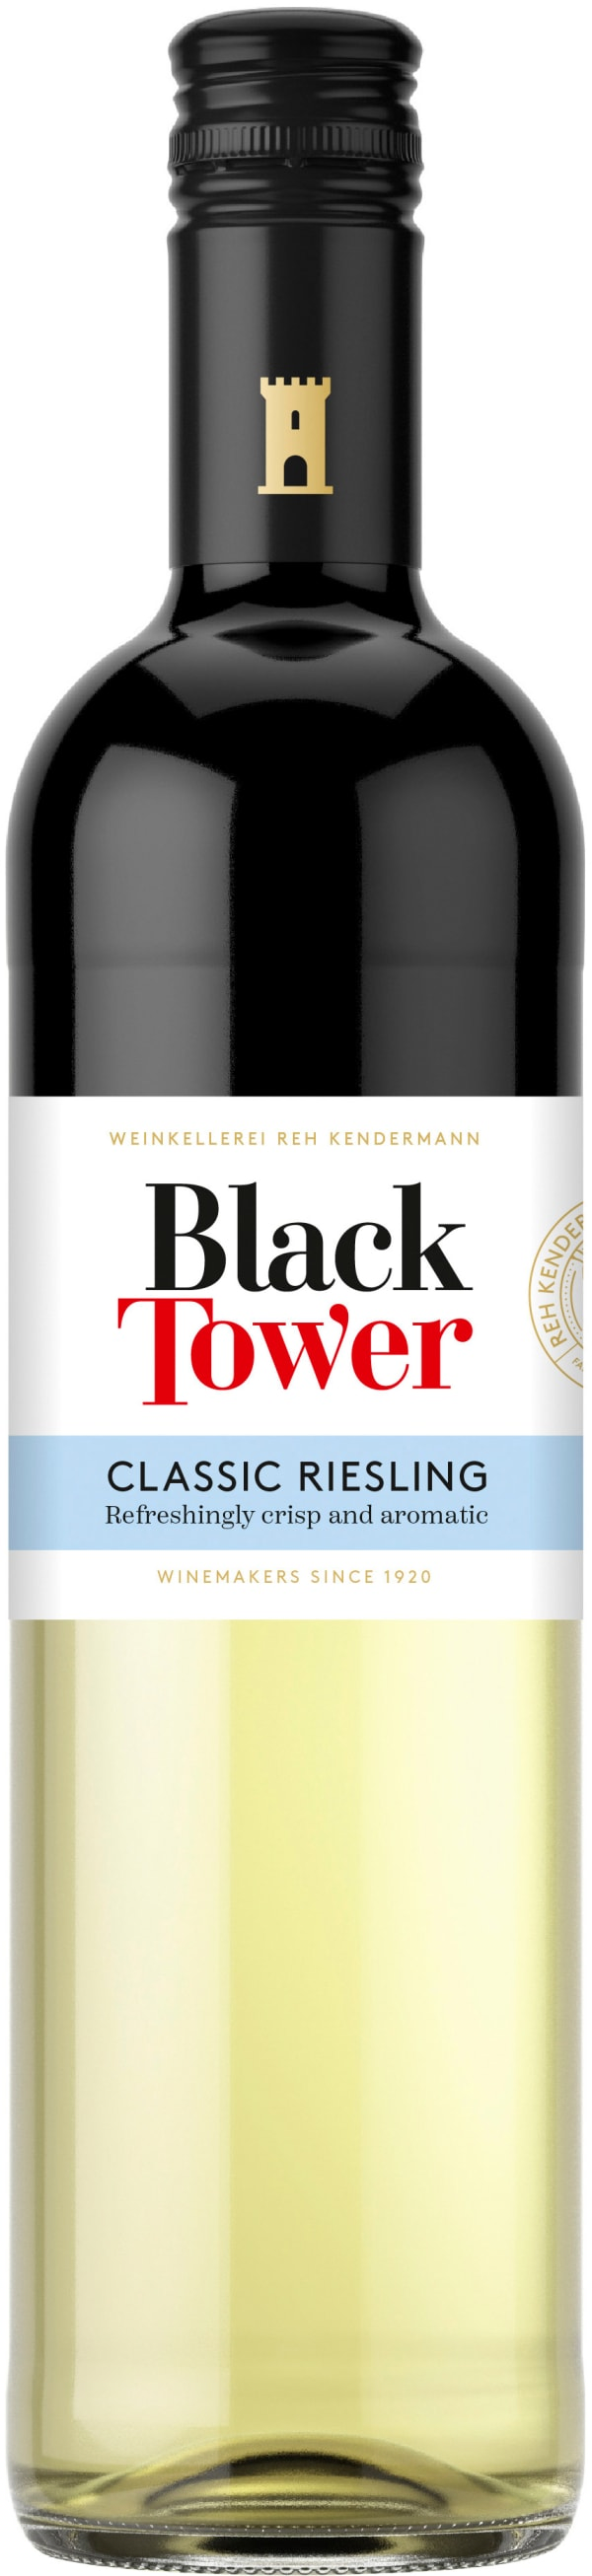 Black Tower Classic Riesling 2017